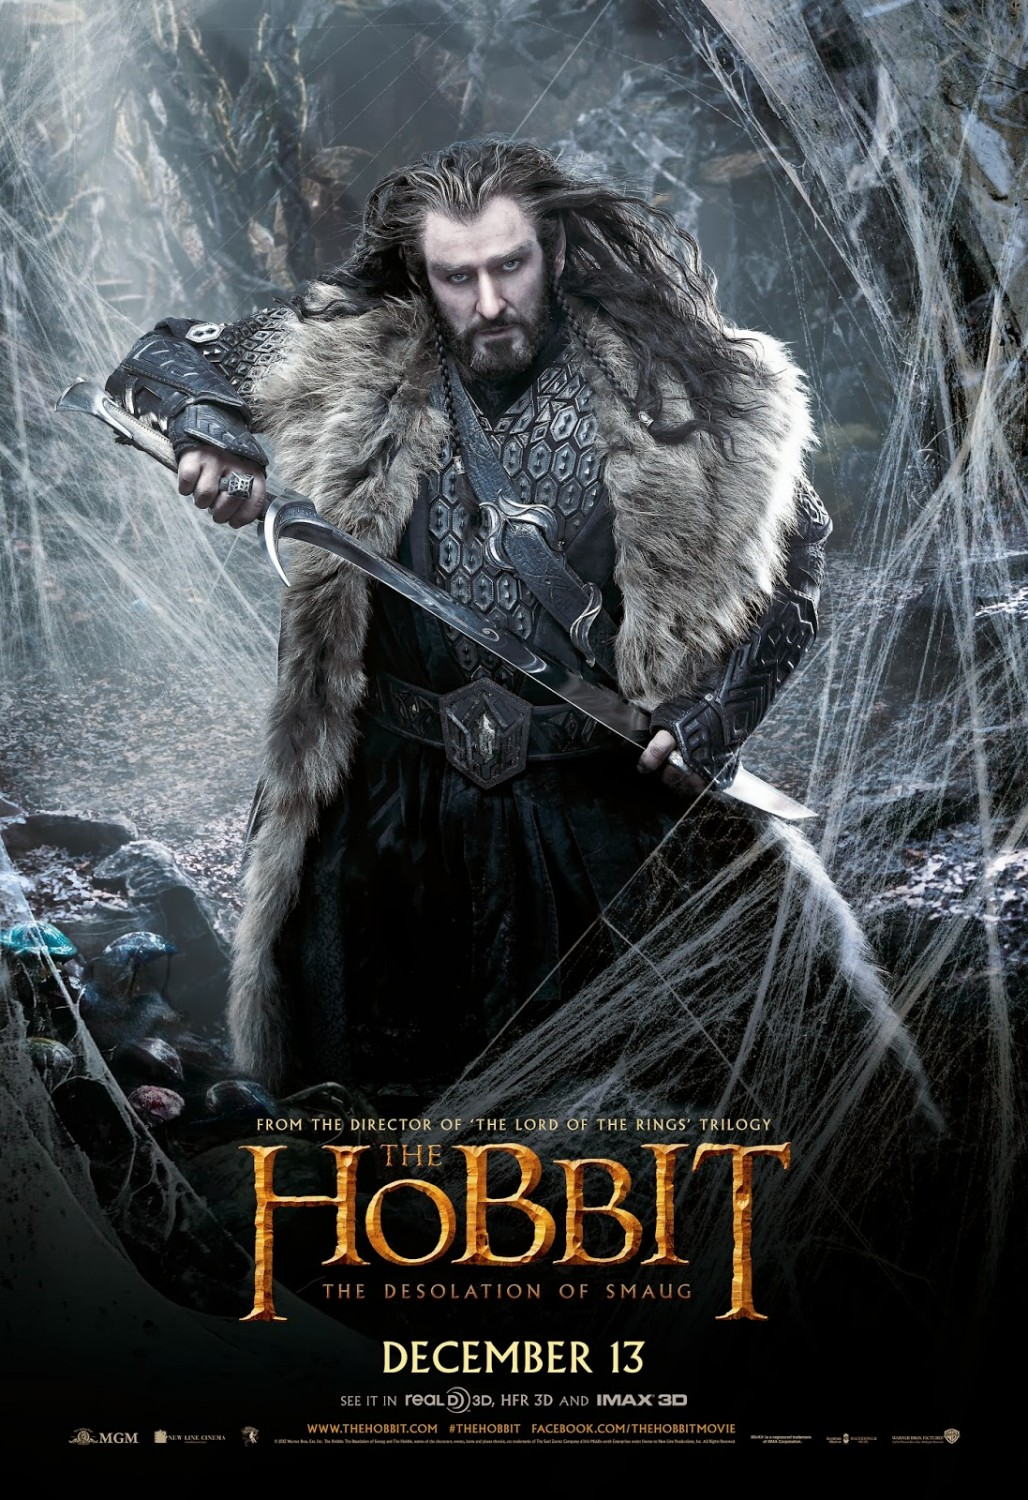 THE HOBBIT THE DESOLATION OF SMAUG-Official Poster Banner PROMO POSTER-07NOVEMBRO2013-03